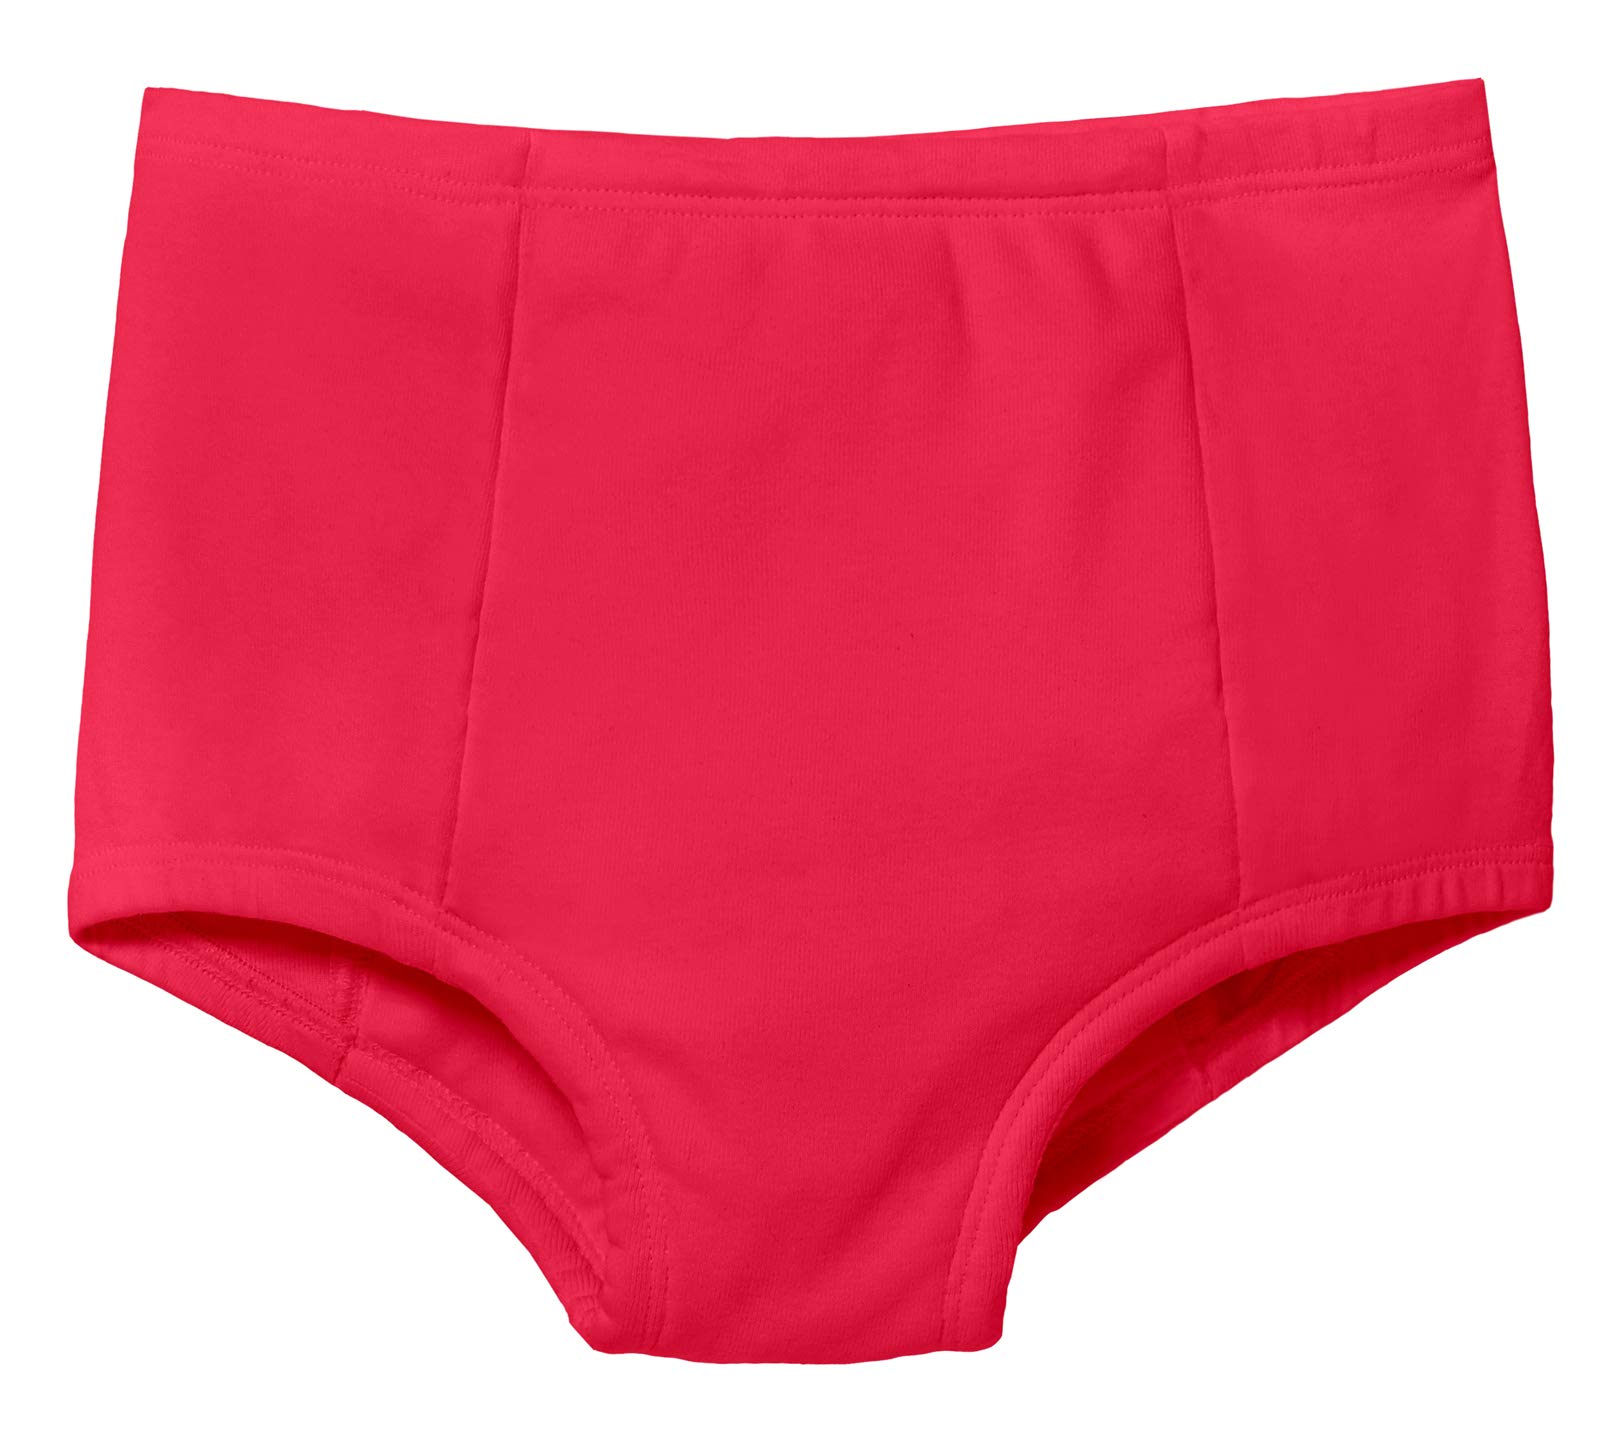 City Threads Boys & Girls Training Underwear Pants Panties Underpants for Potty Training Kids Toddlers - All Cotton for Sensitive Skins SPD Sensory Friendly Clothing, Candy Apple, 2T